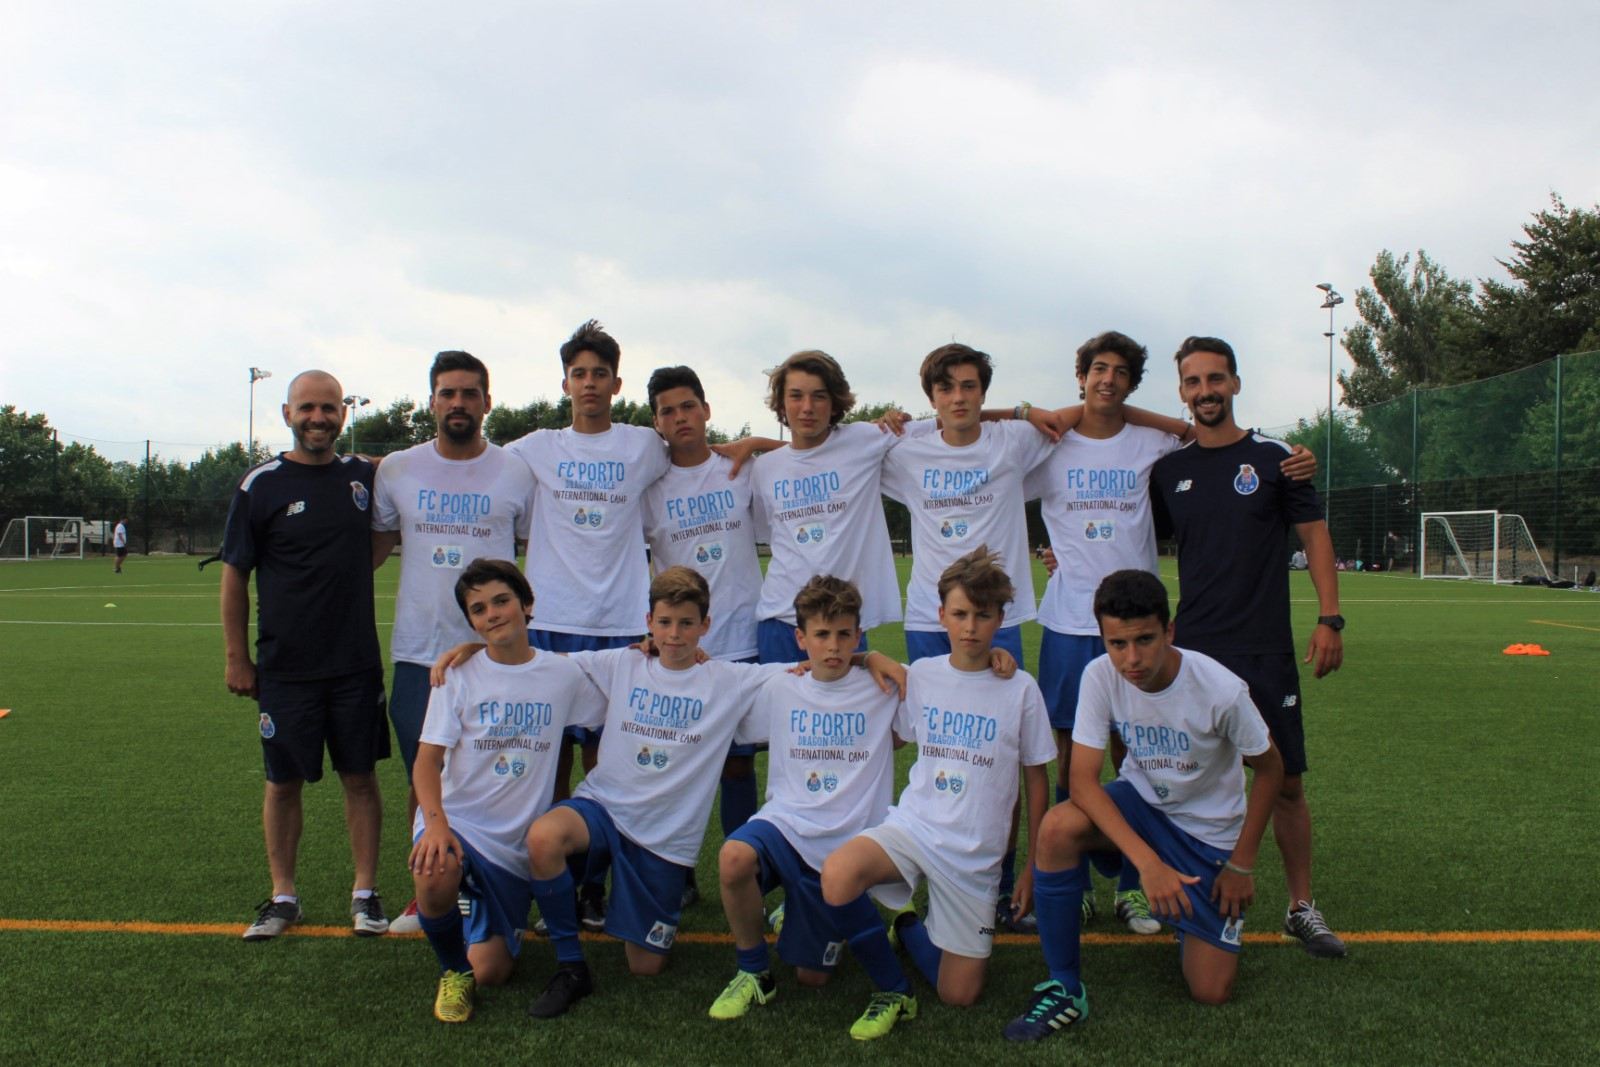 FC Porto Football Camp - Séjour Linguistique en Irlande